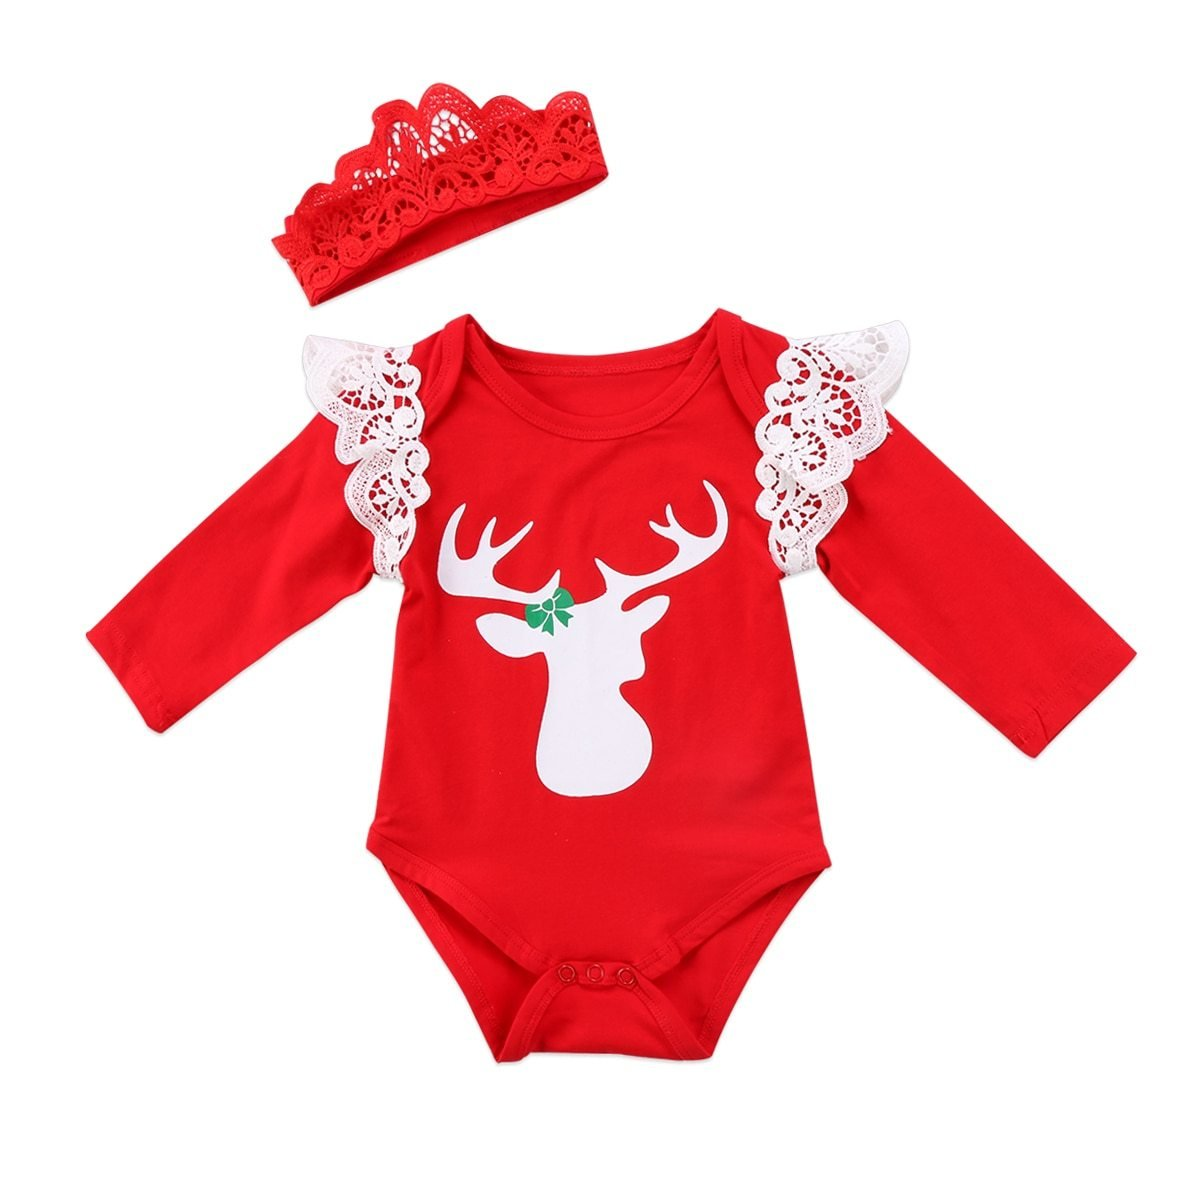 Christmas Baby Girl Lace Romper - Maraya's Marketplace